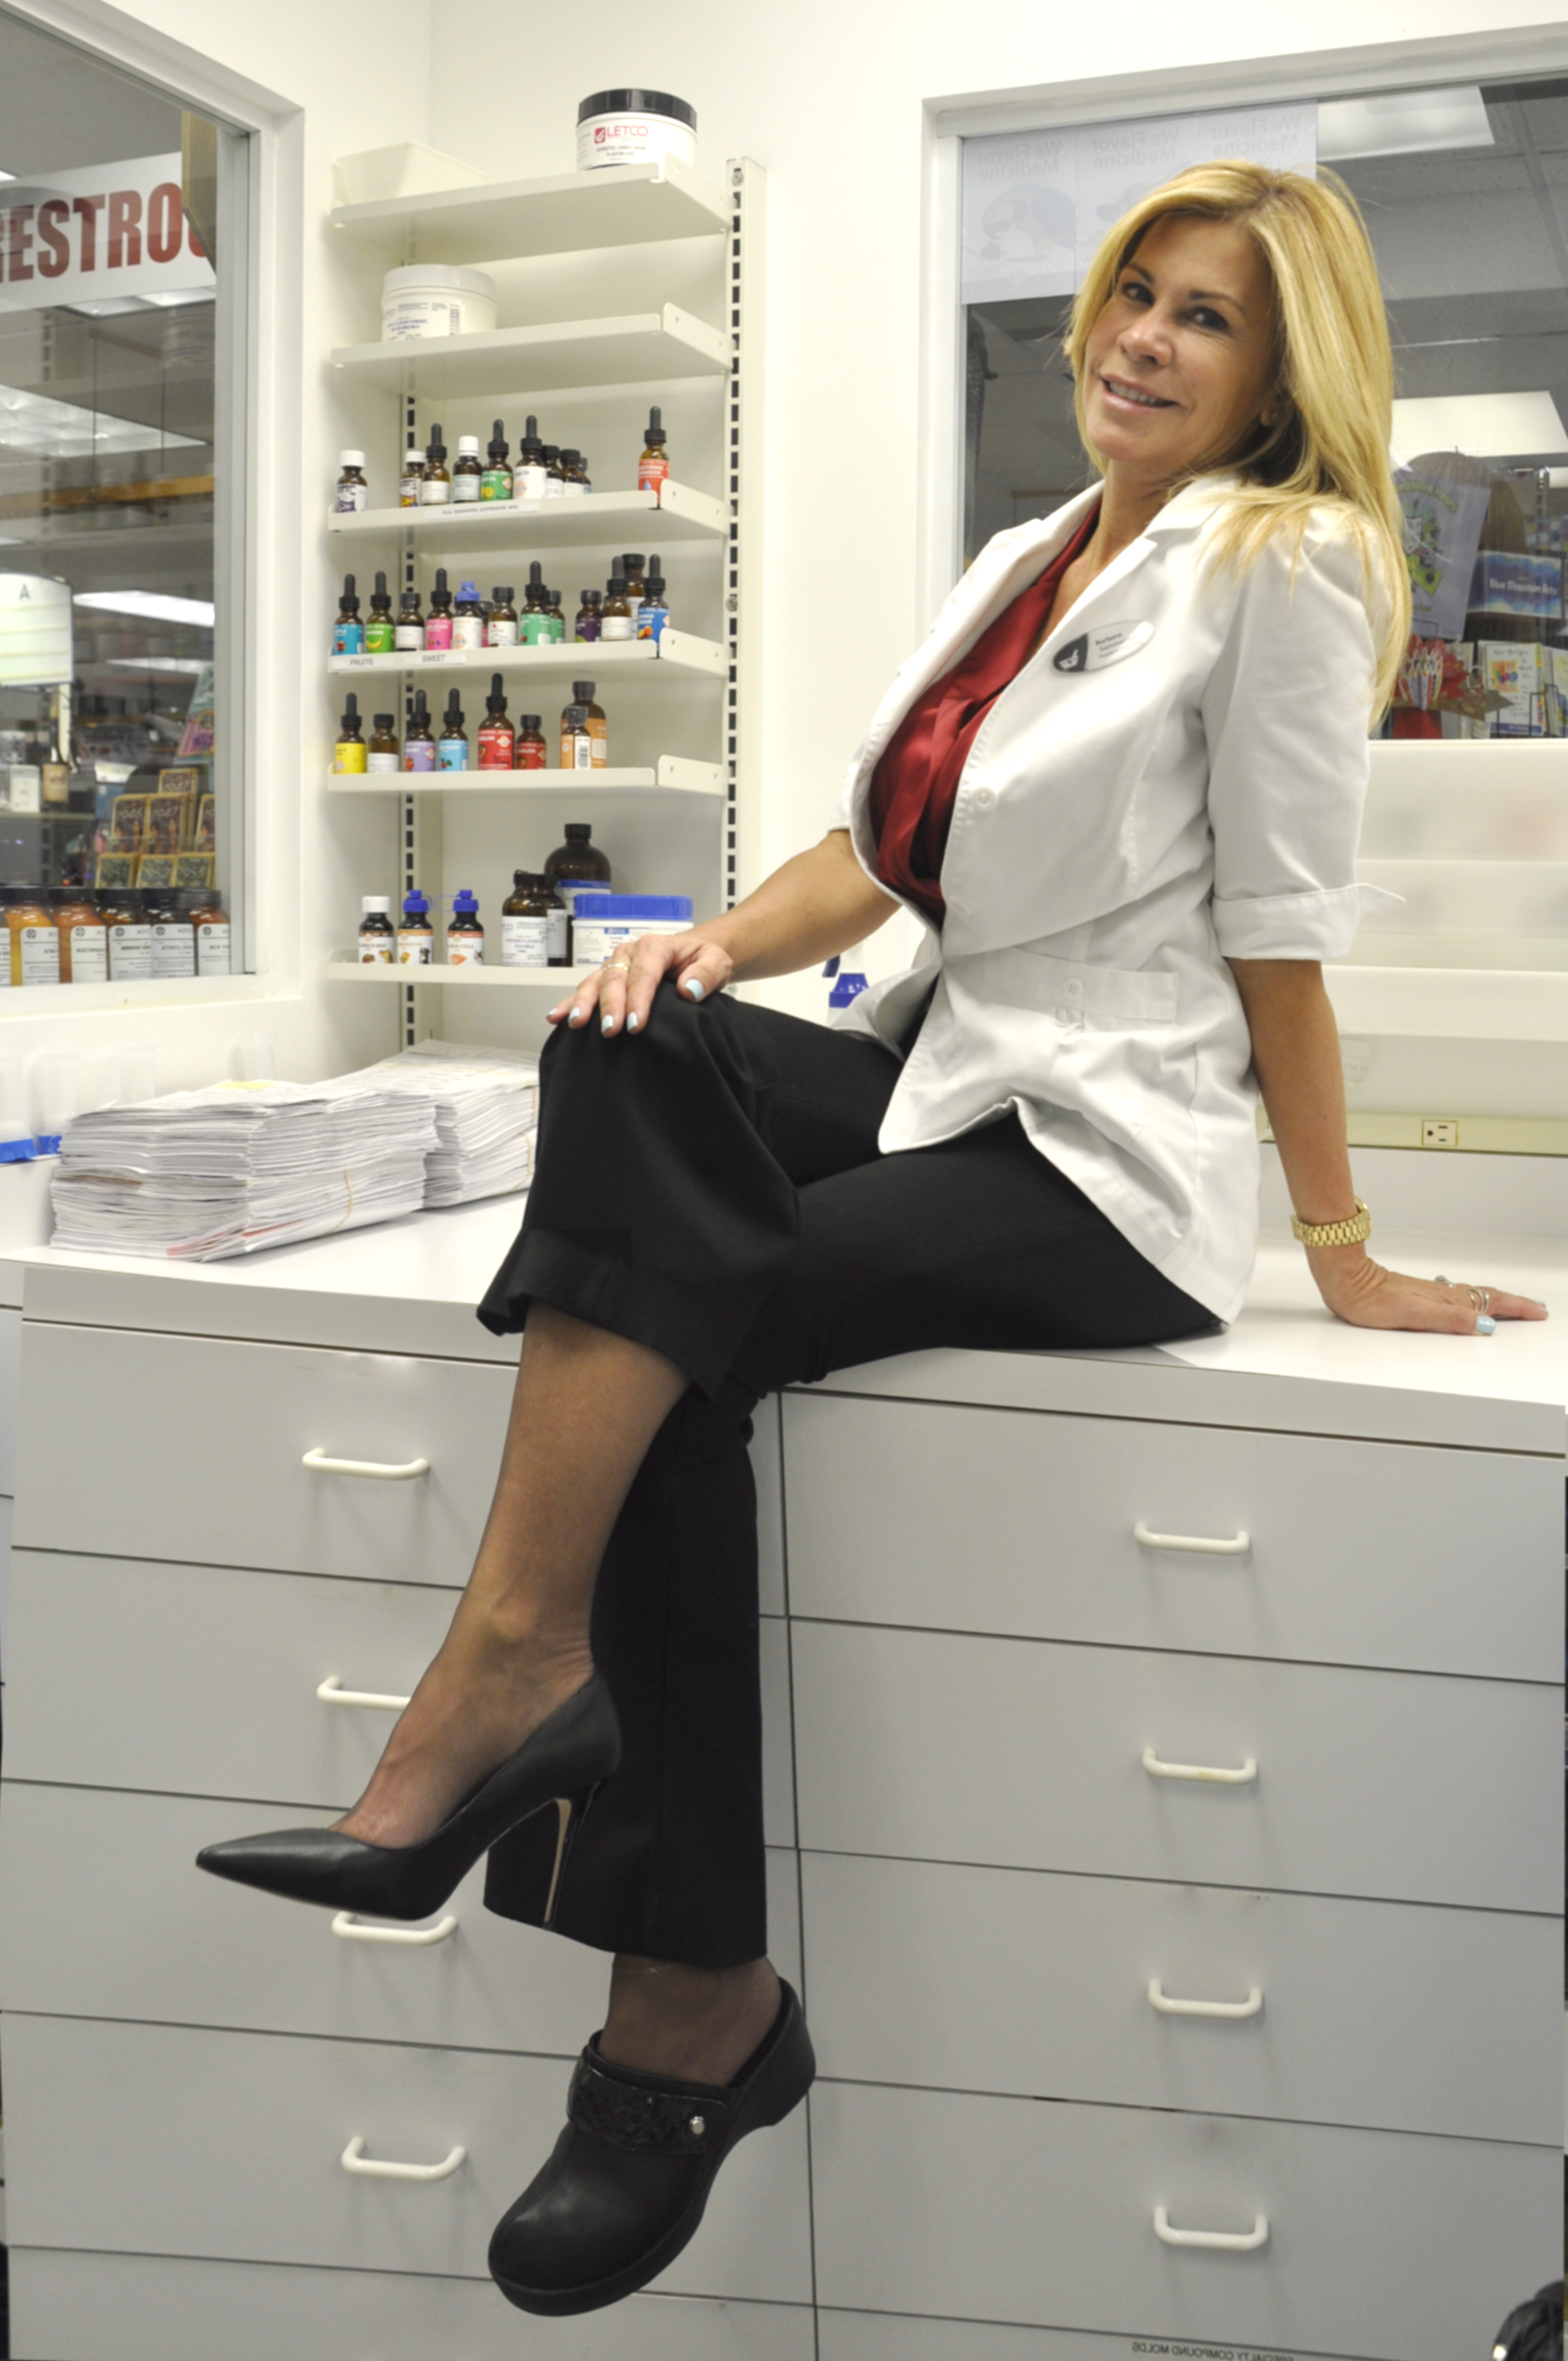 Pharmacist sitting on counter